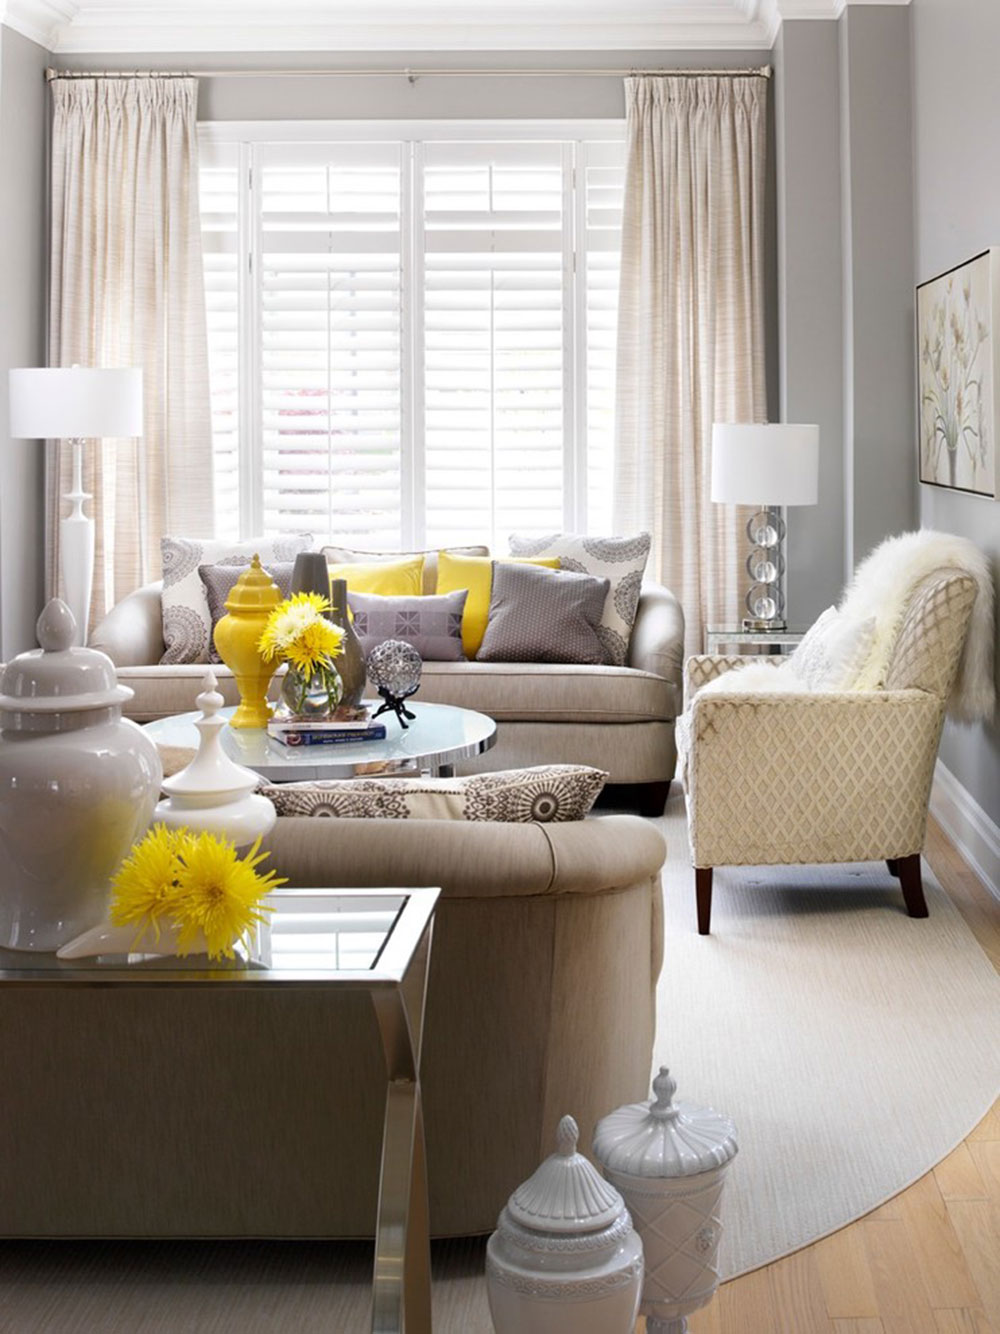 Make your interior more expensive and represent you2 Make your interior more expensive